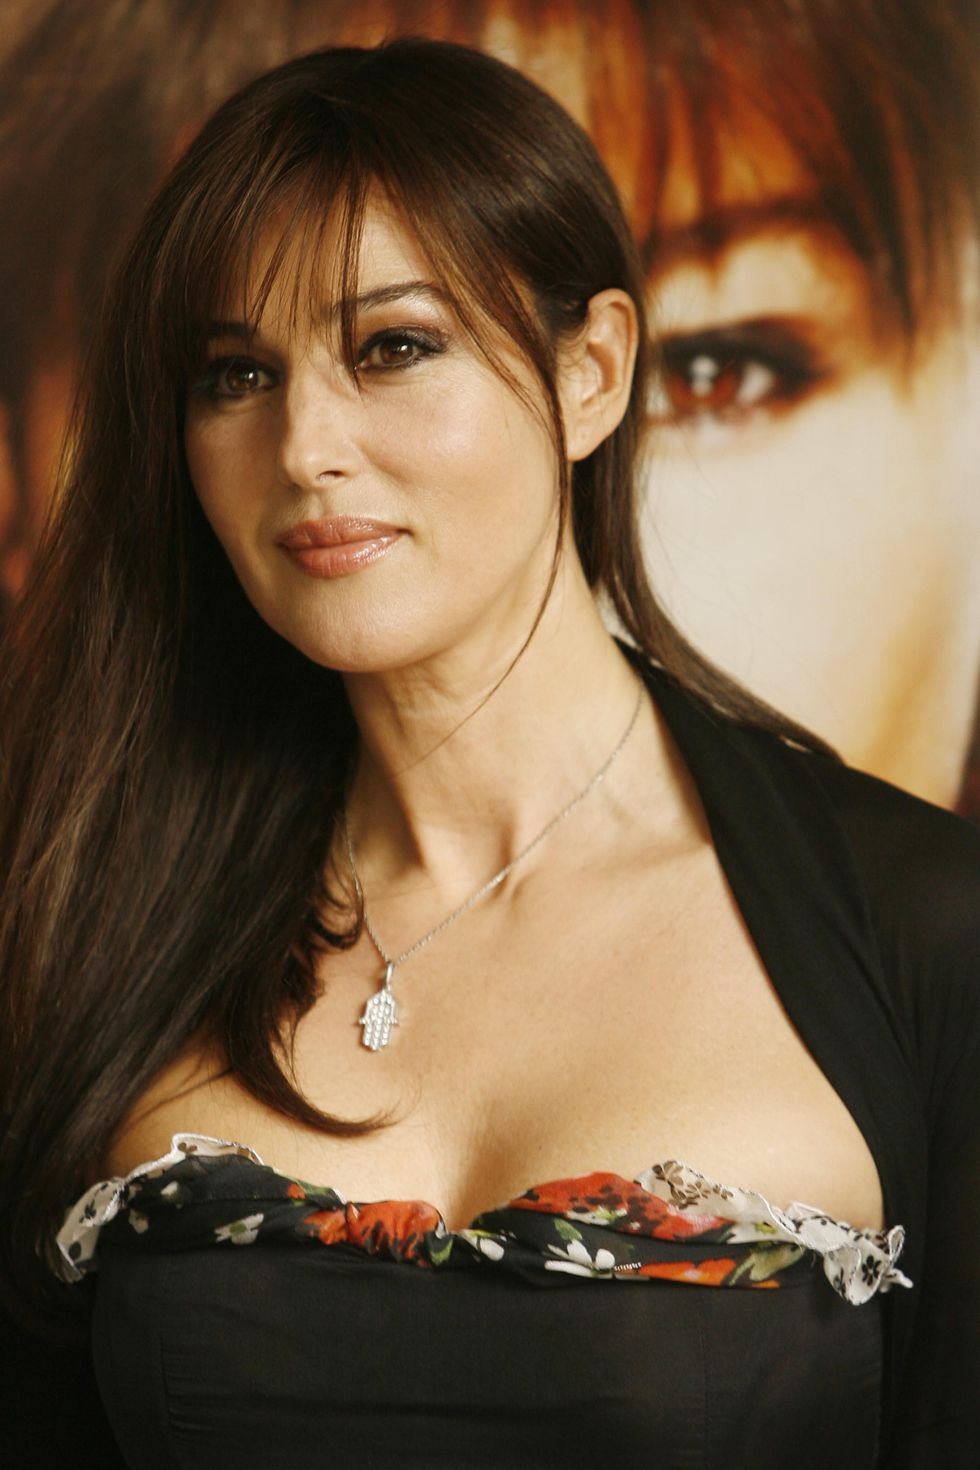 monica-bellucci-shoot-em-up-photocall-in-rome-01